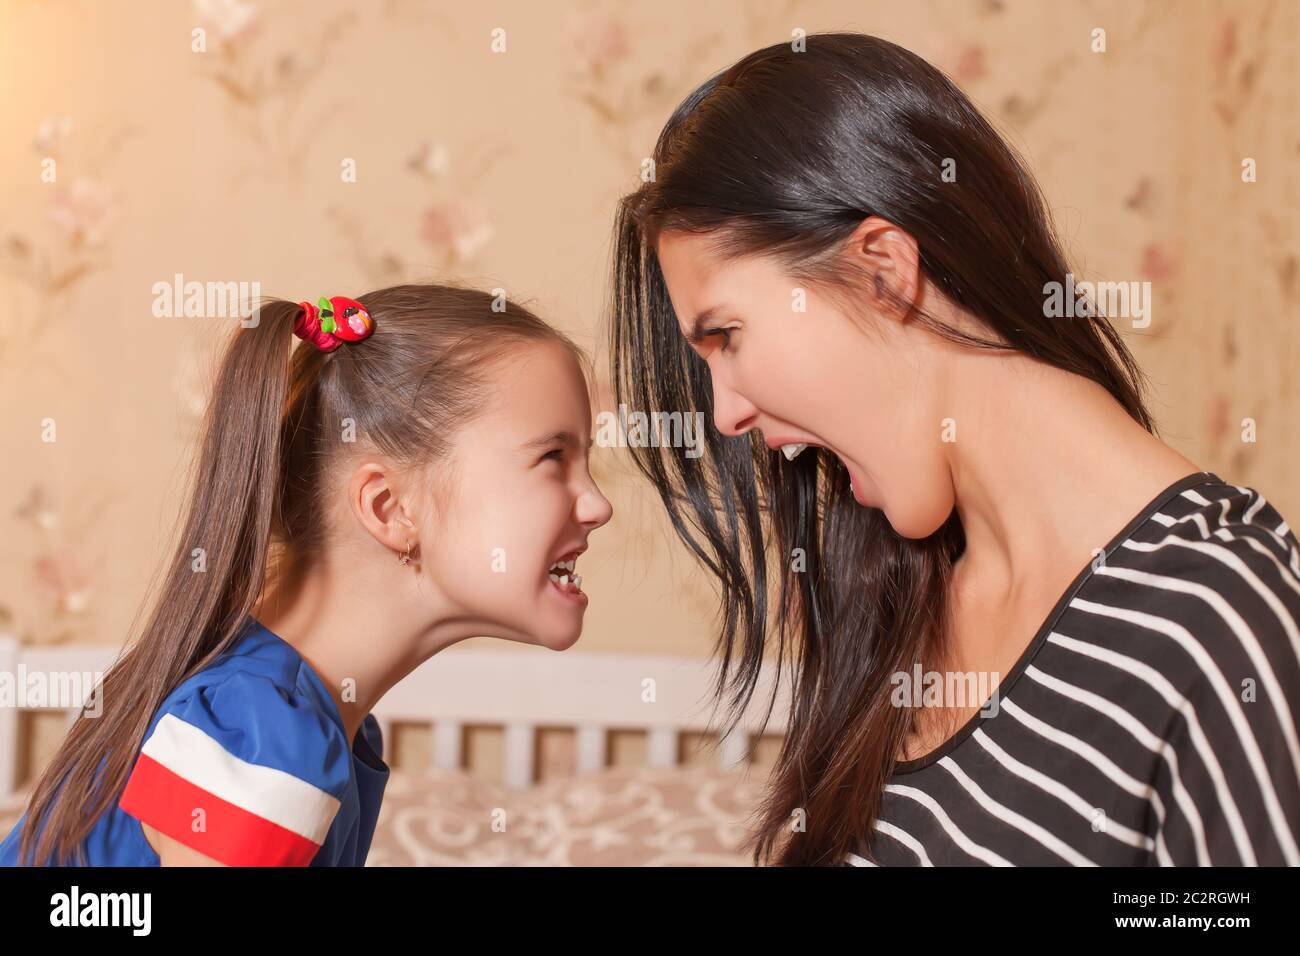 Young mother and her little daughter make each other terrible faces Stock Photo